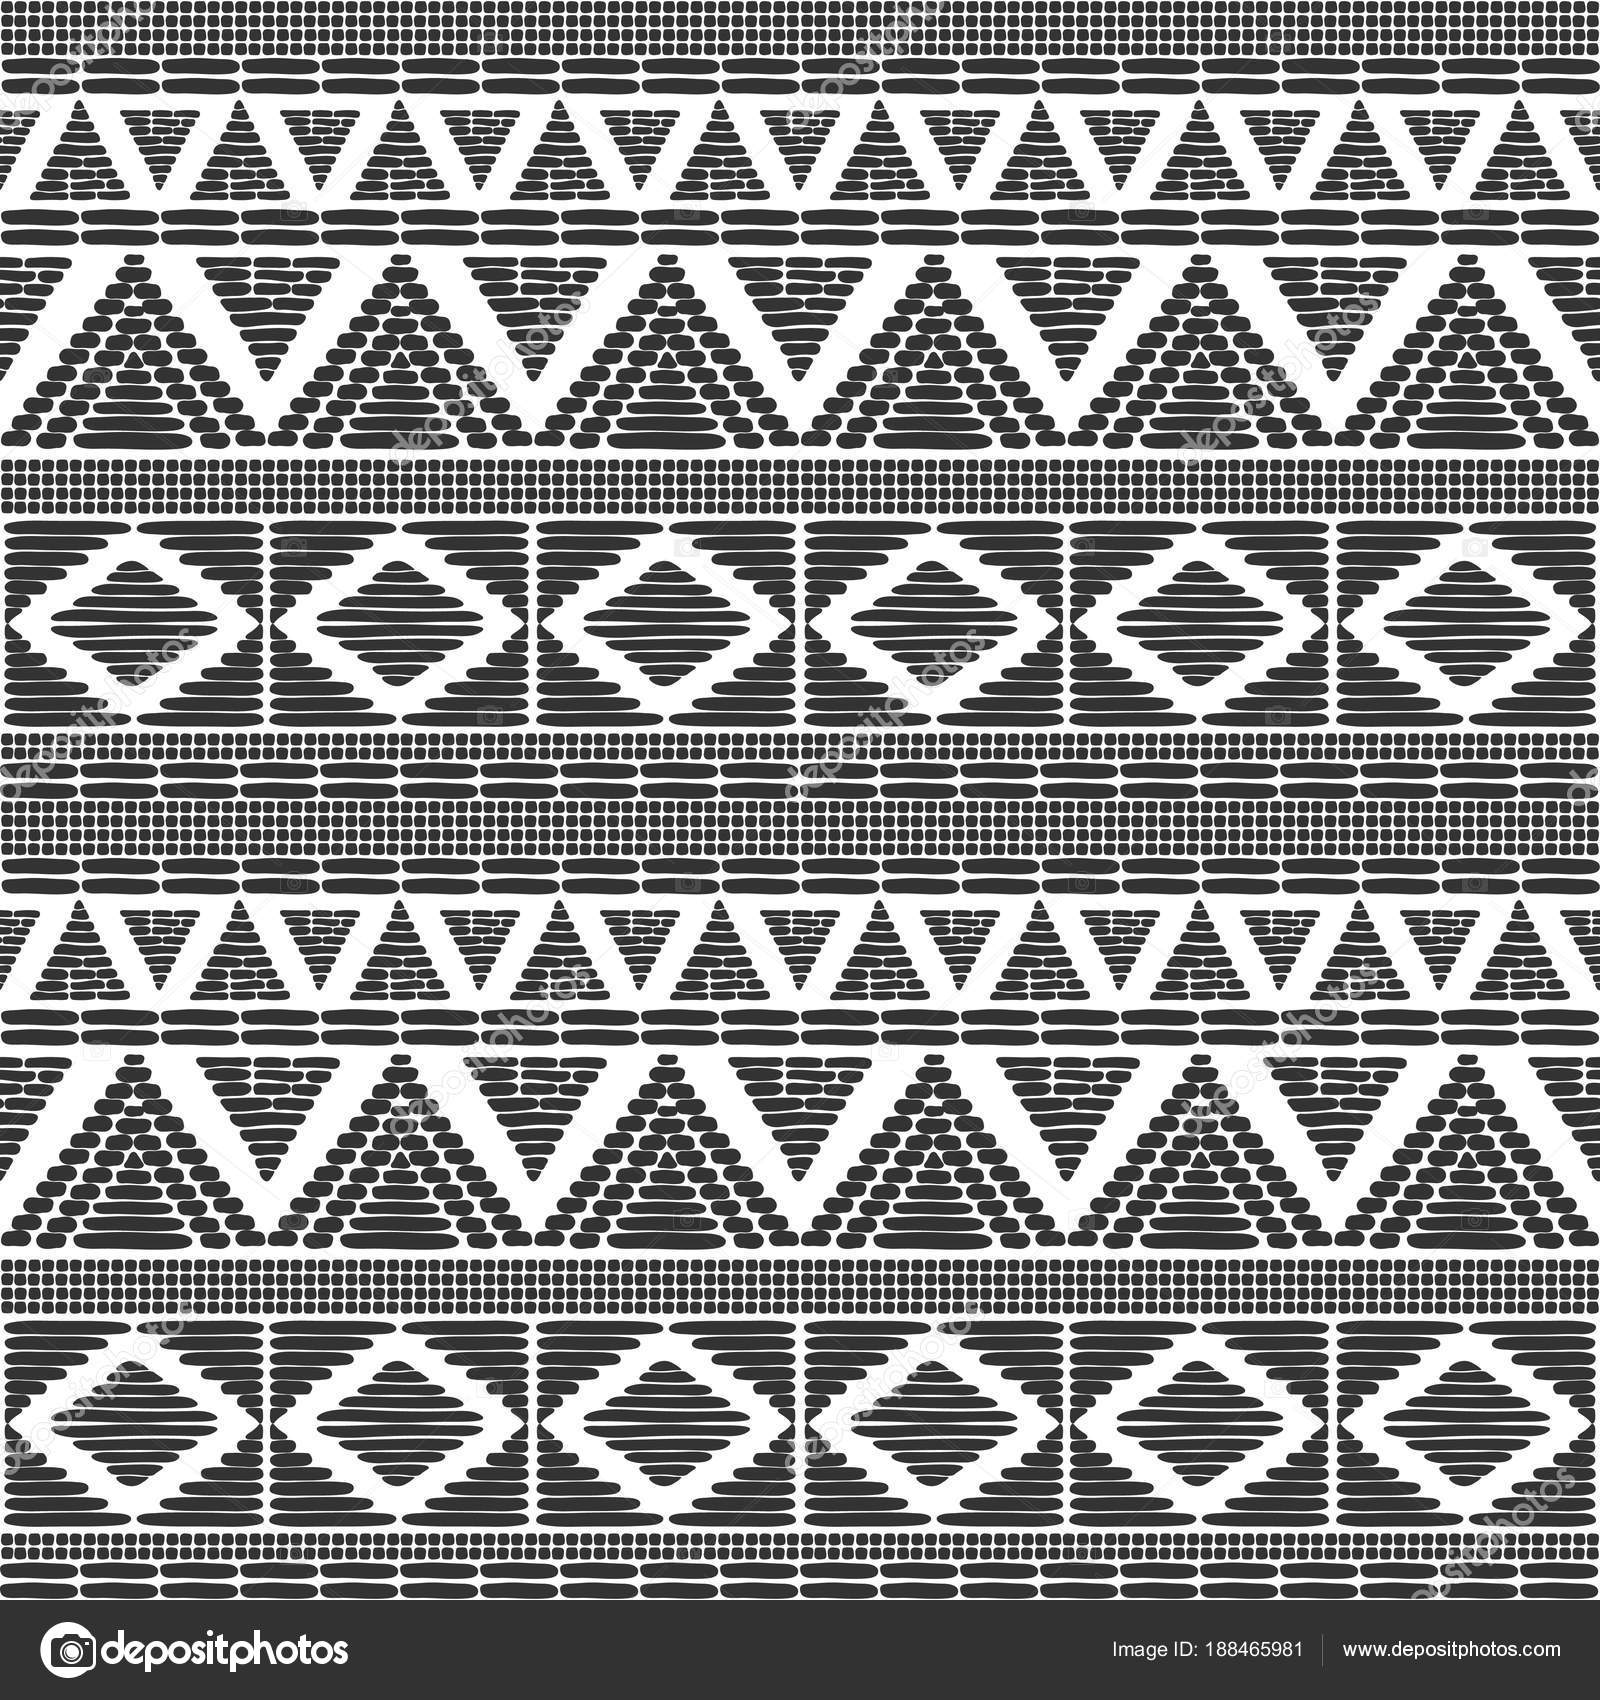 Tribal Pattern Vector In Black White Colors Print With African Tribe Border Motifs Ethic Texture Background For Fabric Wallpaper Wrapping Paper And